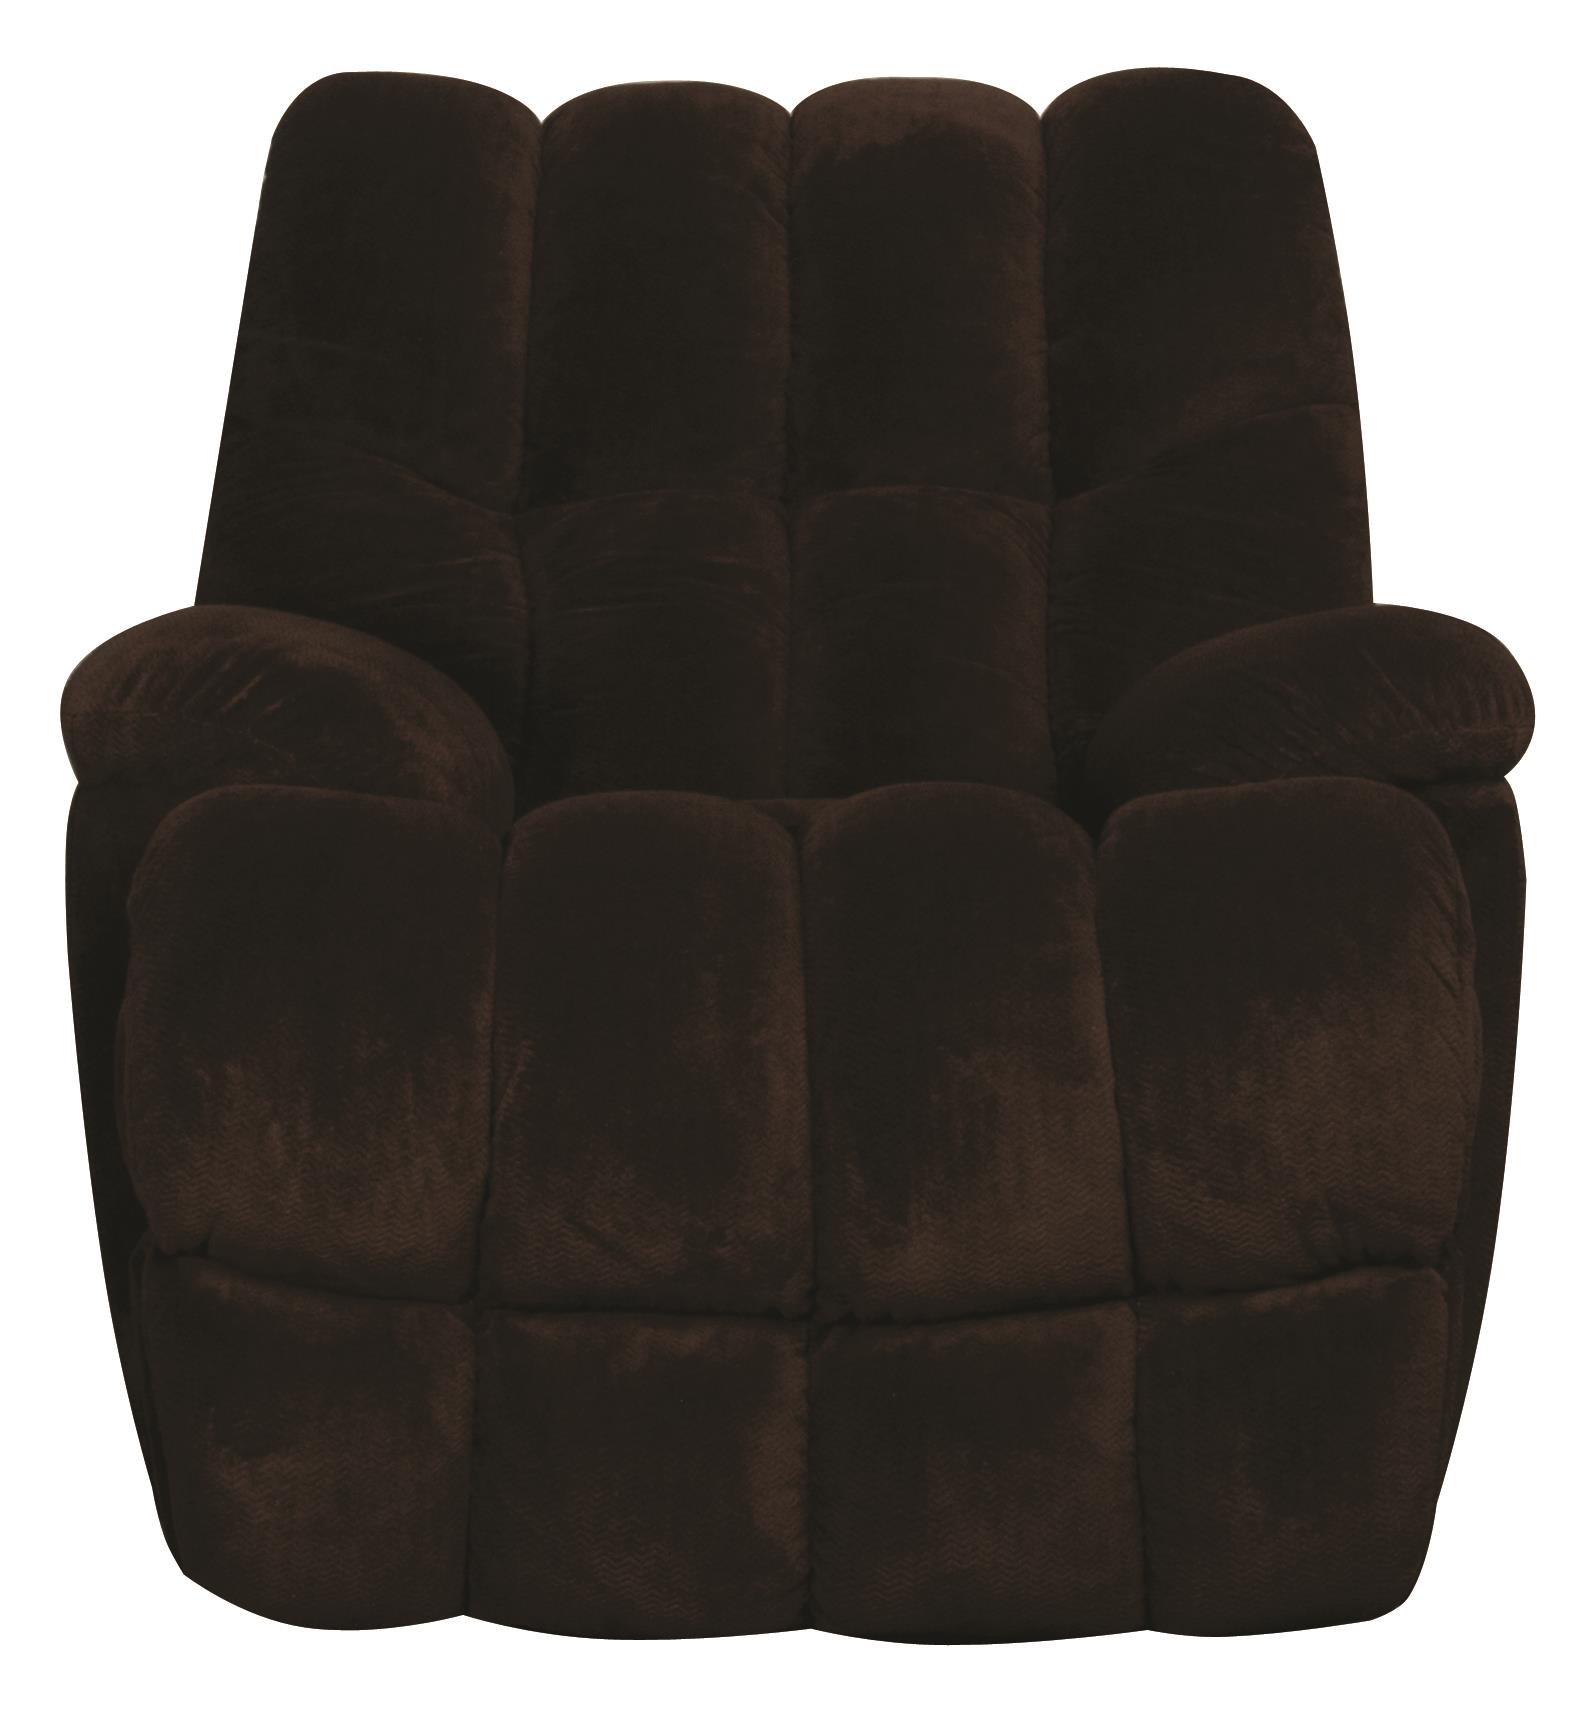 Morris Home Furnishings Kareem Kareem Rocker Recliner - Item Number: 340334959